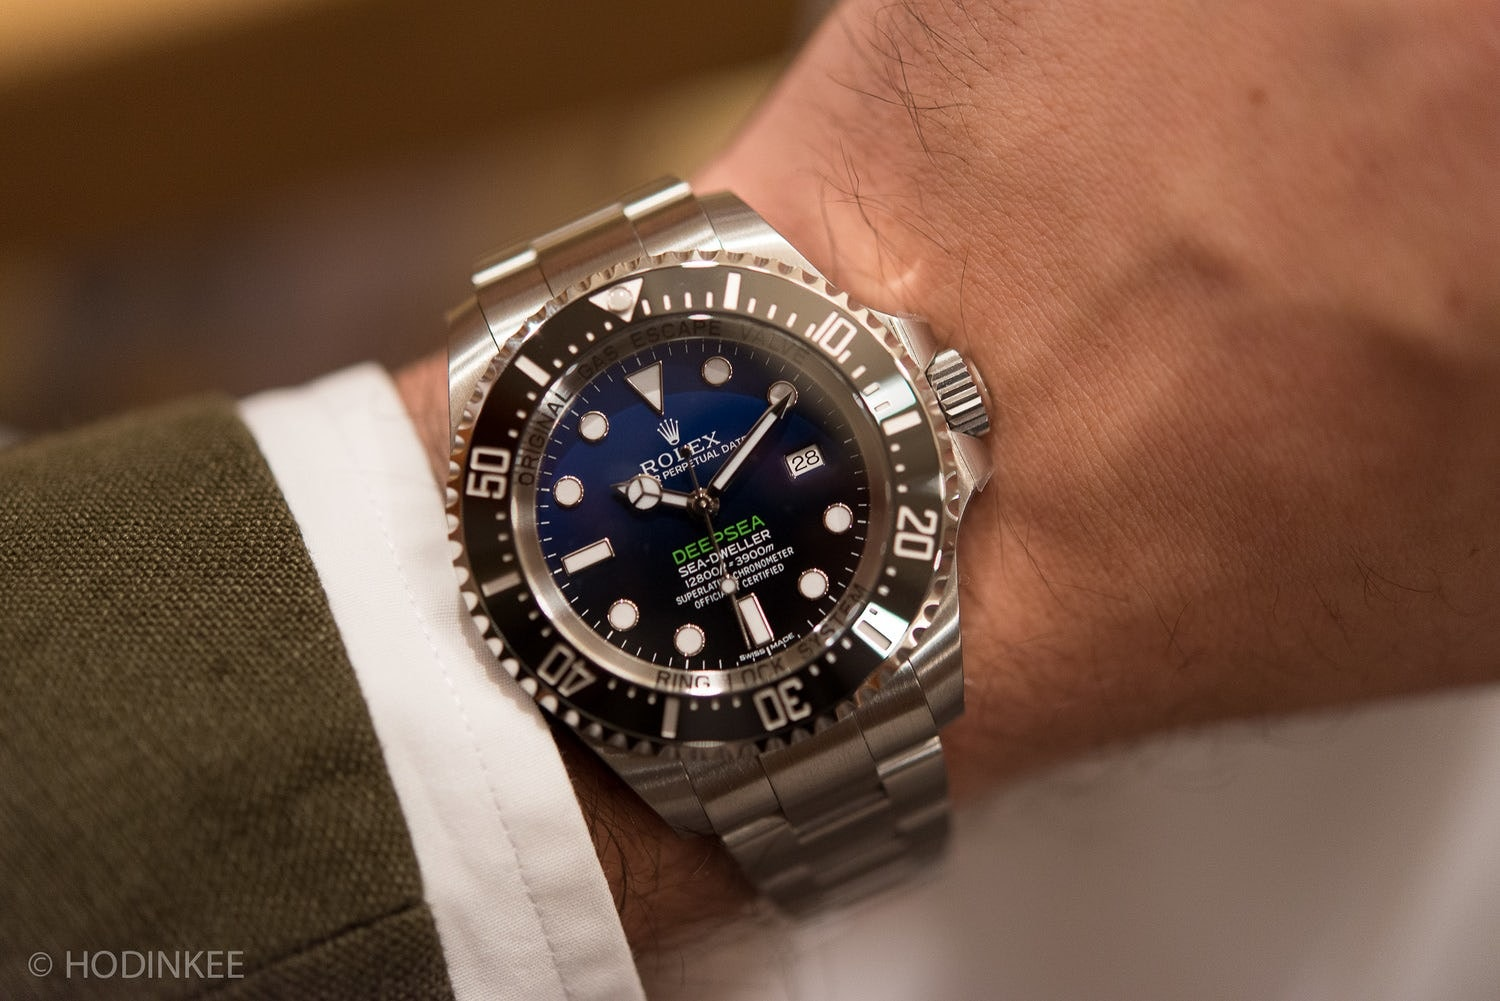 Rolex's Sea-Dweller Deepsea D-Blue introduced in 2014 A Week On The Wrist: The Rolex Sea-Dweller Reference 126600 A Week On The Wrist: The Rolex Sea-Dweller Reference 126600  img 2